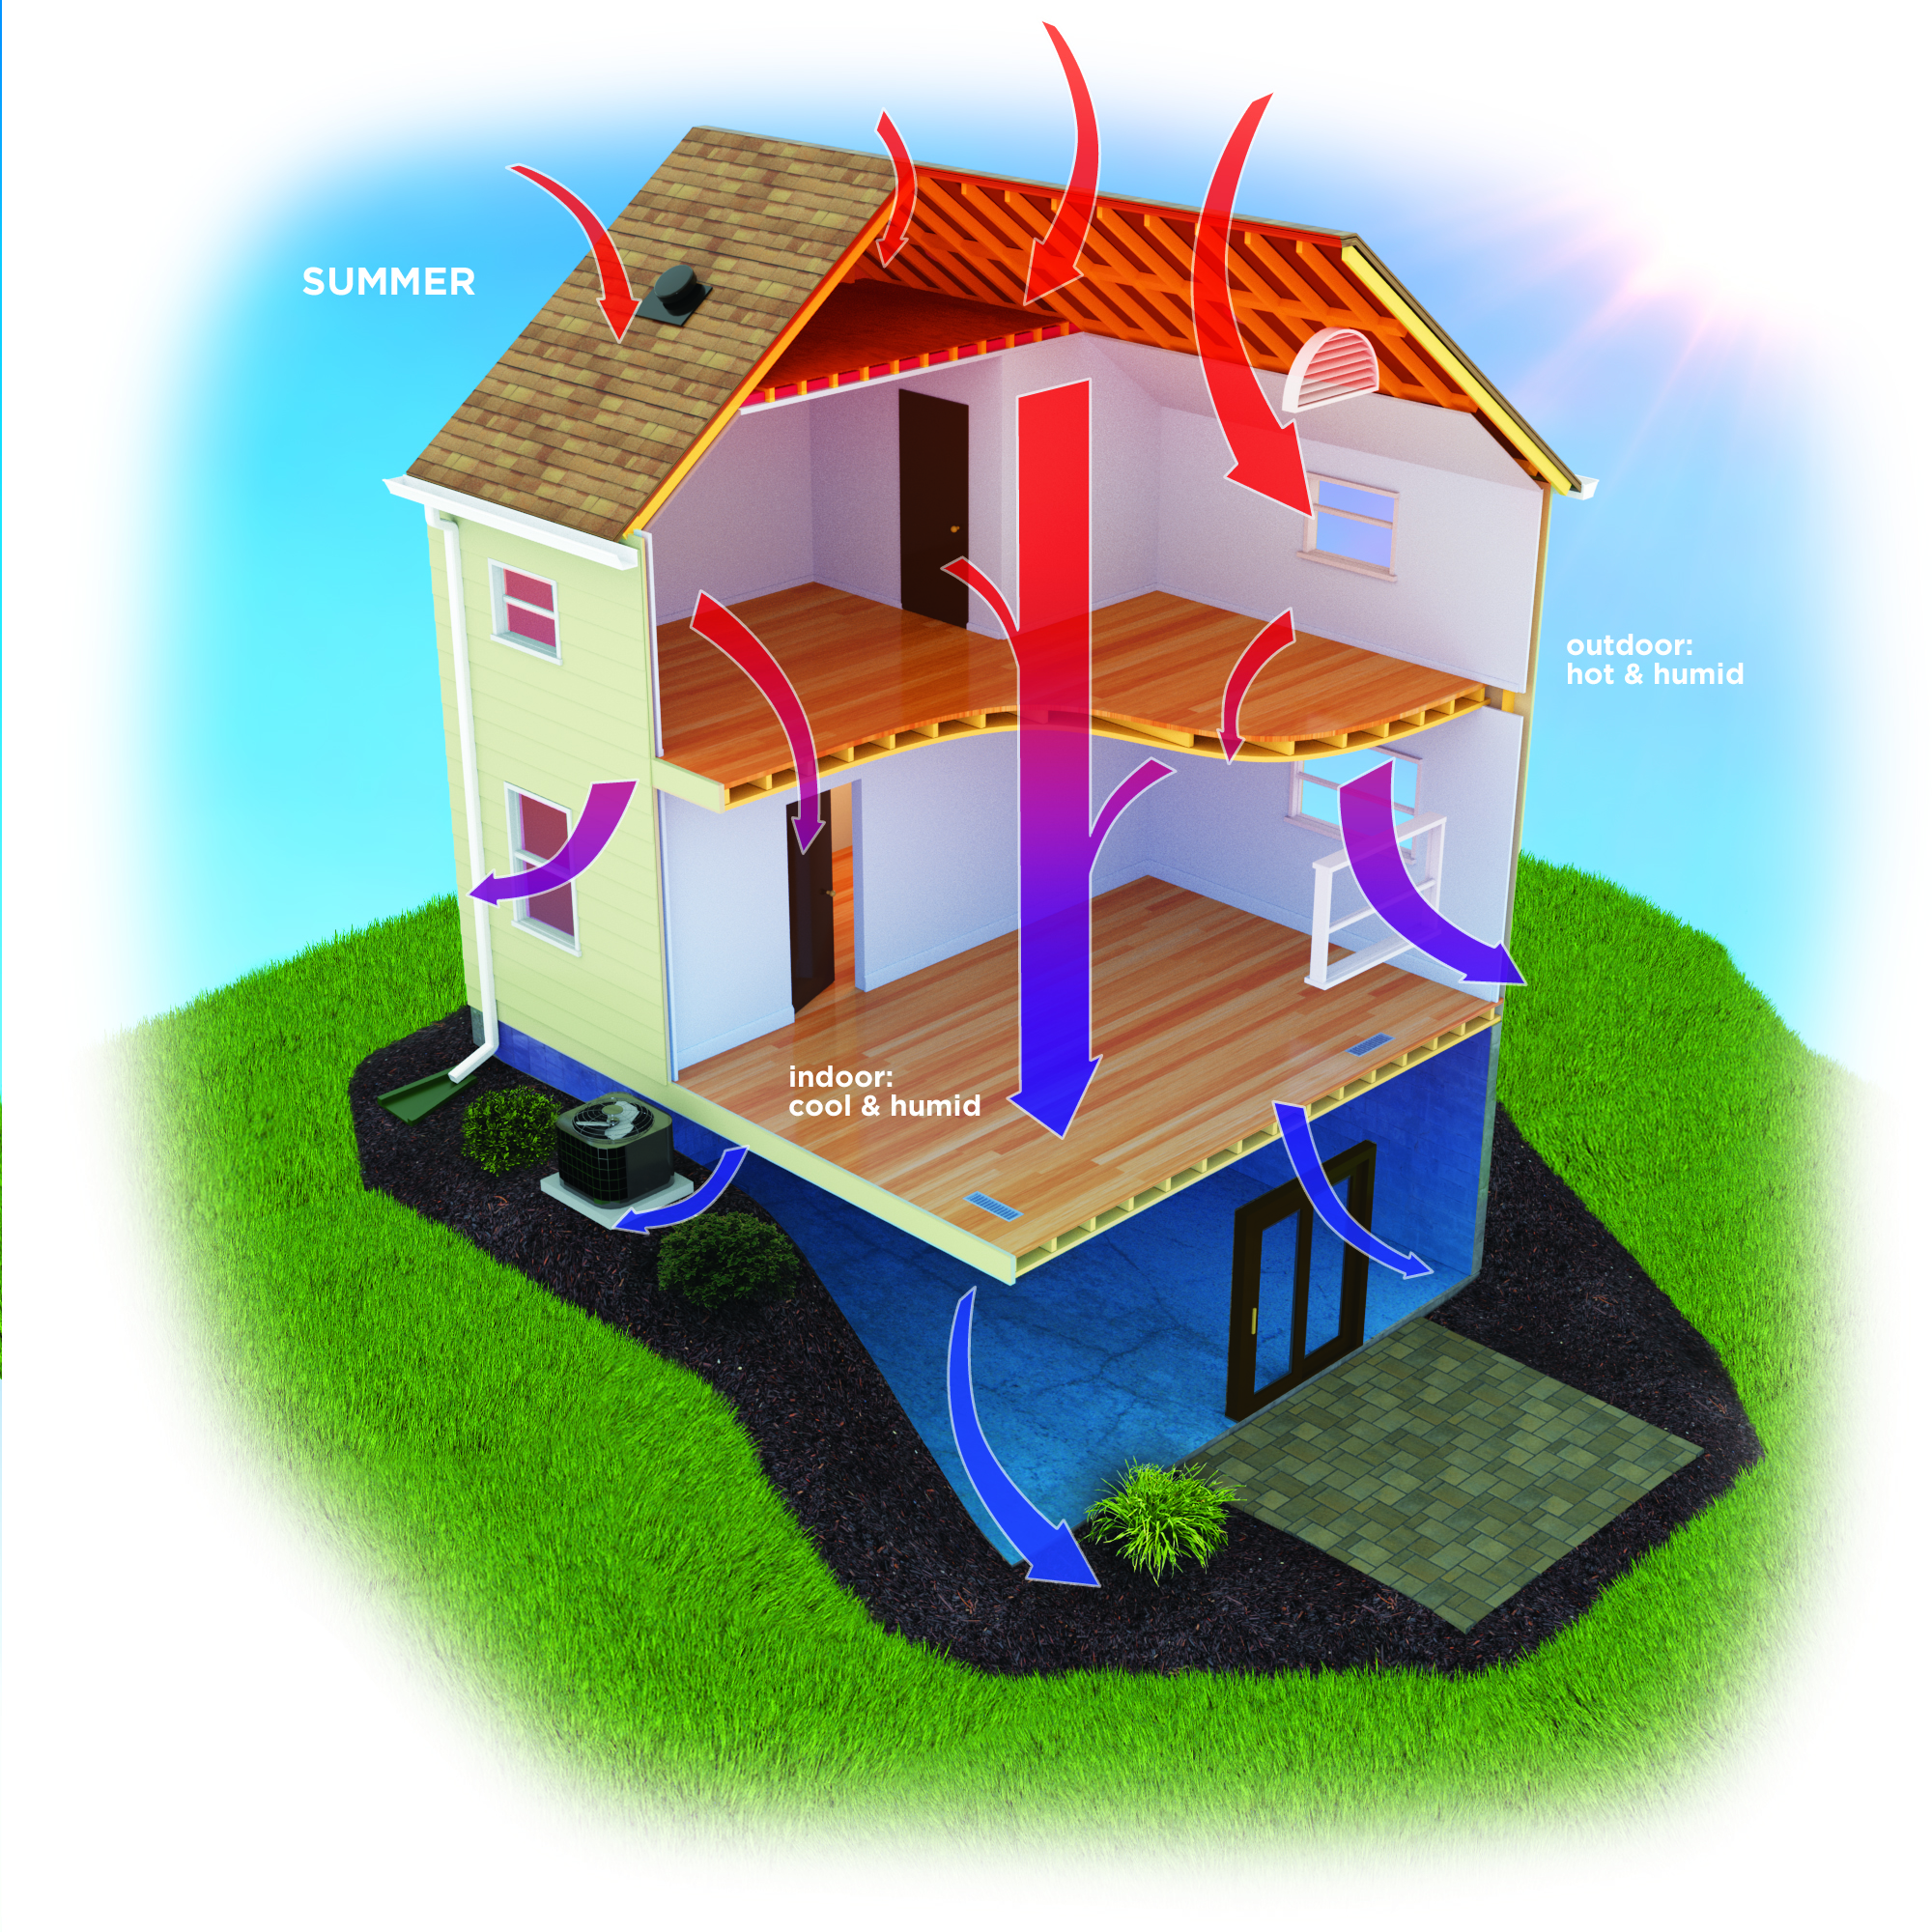 Diagram of Heat in a House